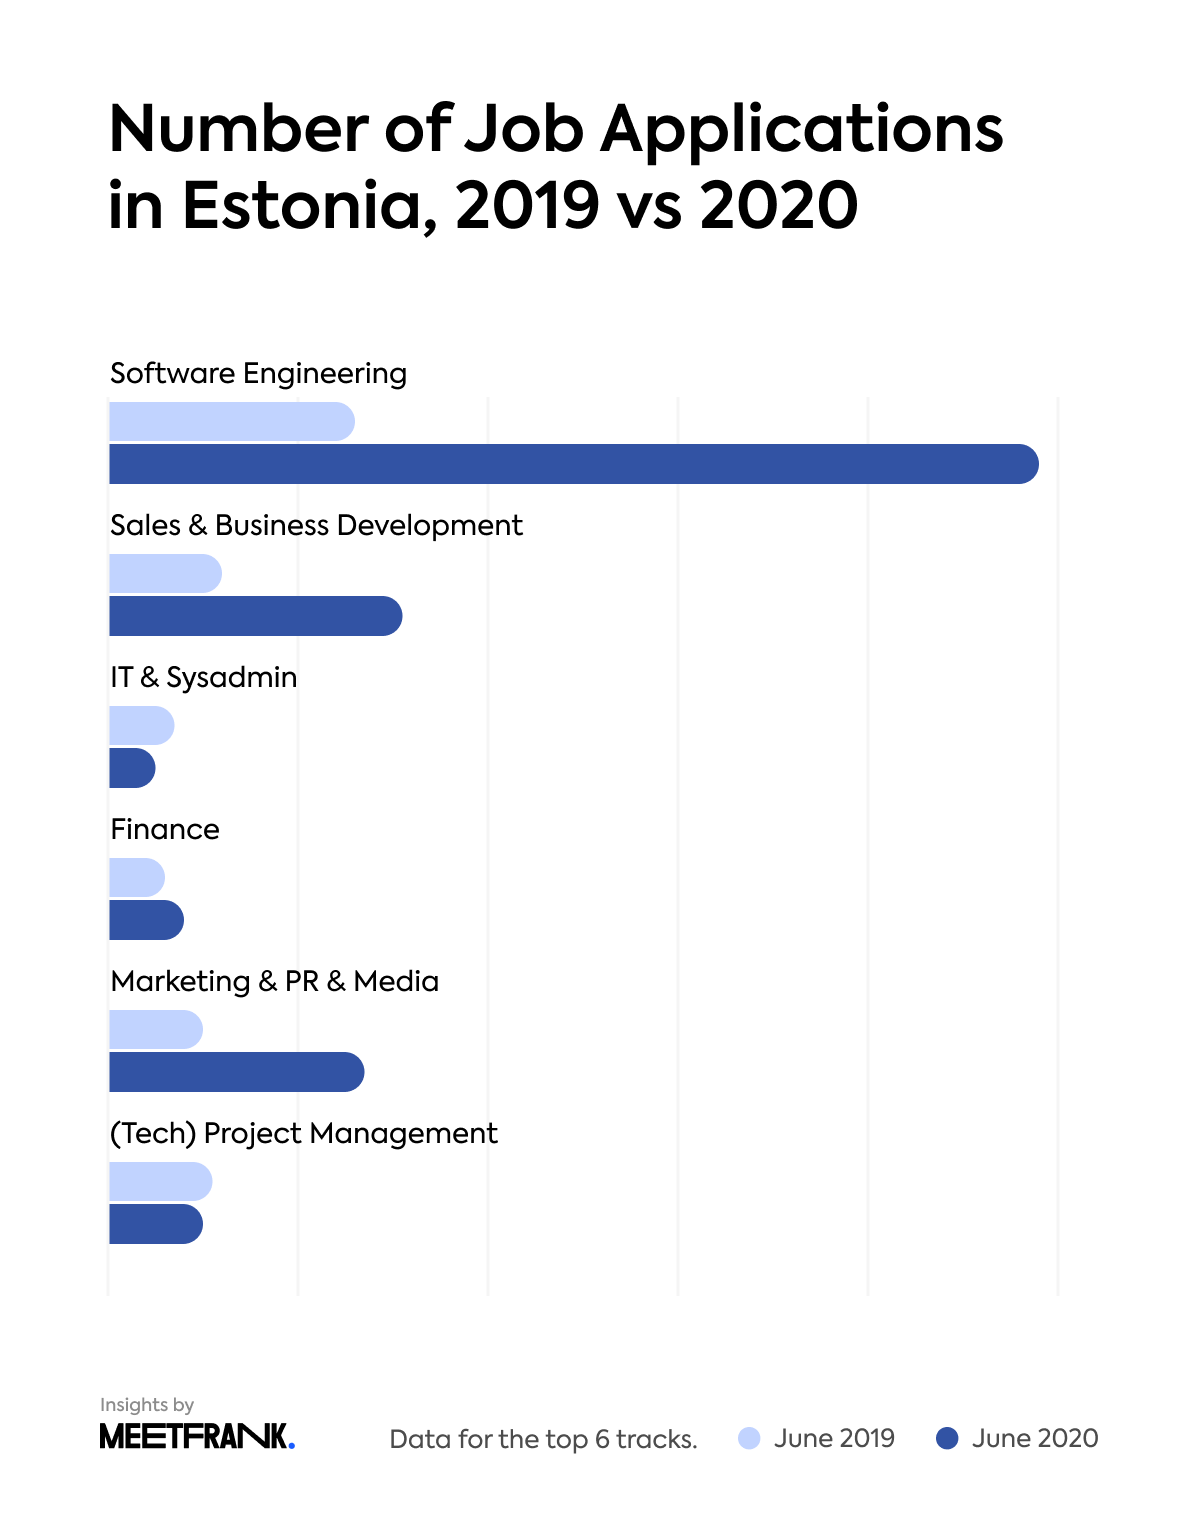 Number of job applications in Estonia in 2019 vs 2020